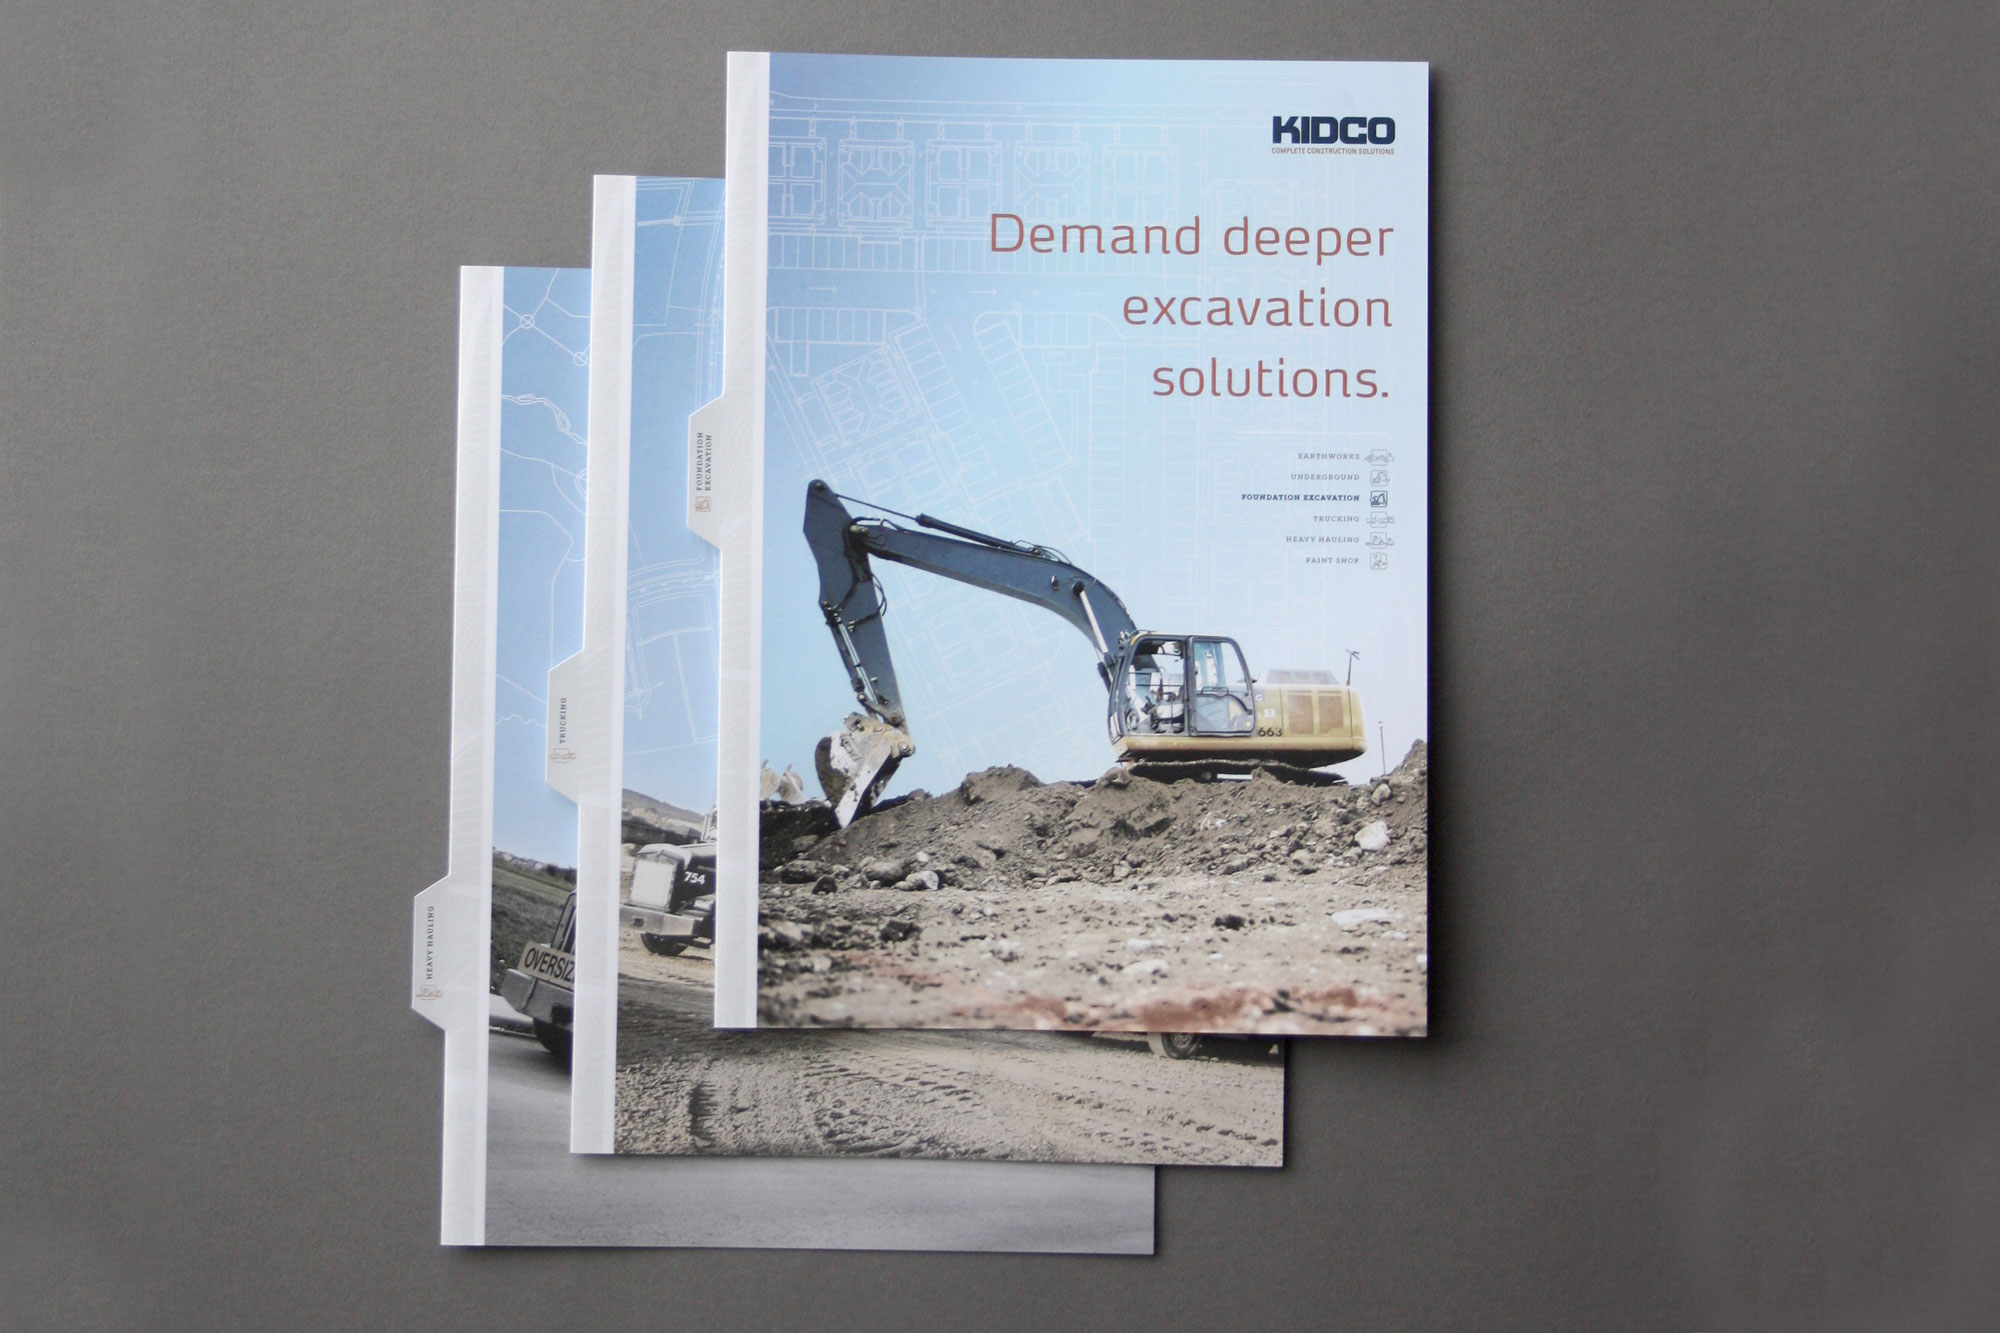 Brochure cover design showing excavator for Kidco Construction in Calgary by Studio Forum